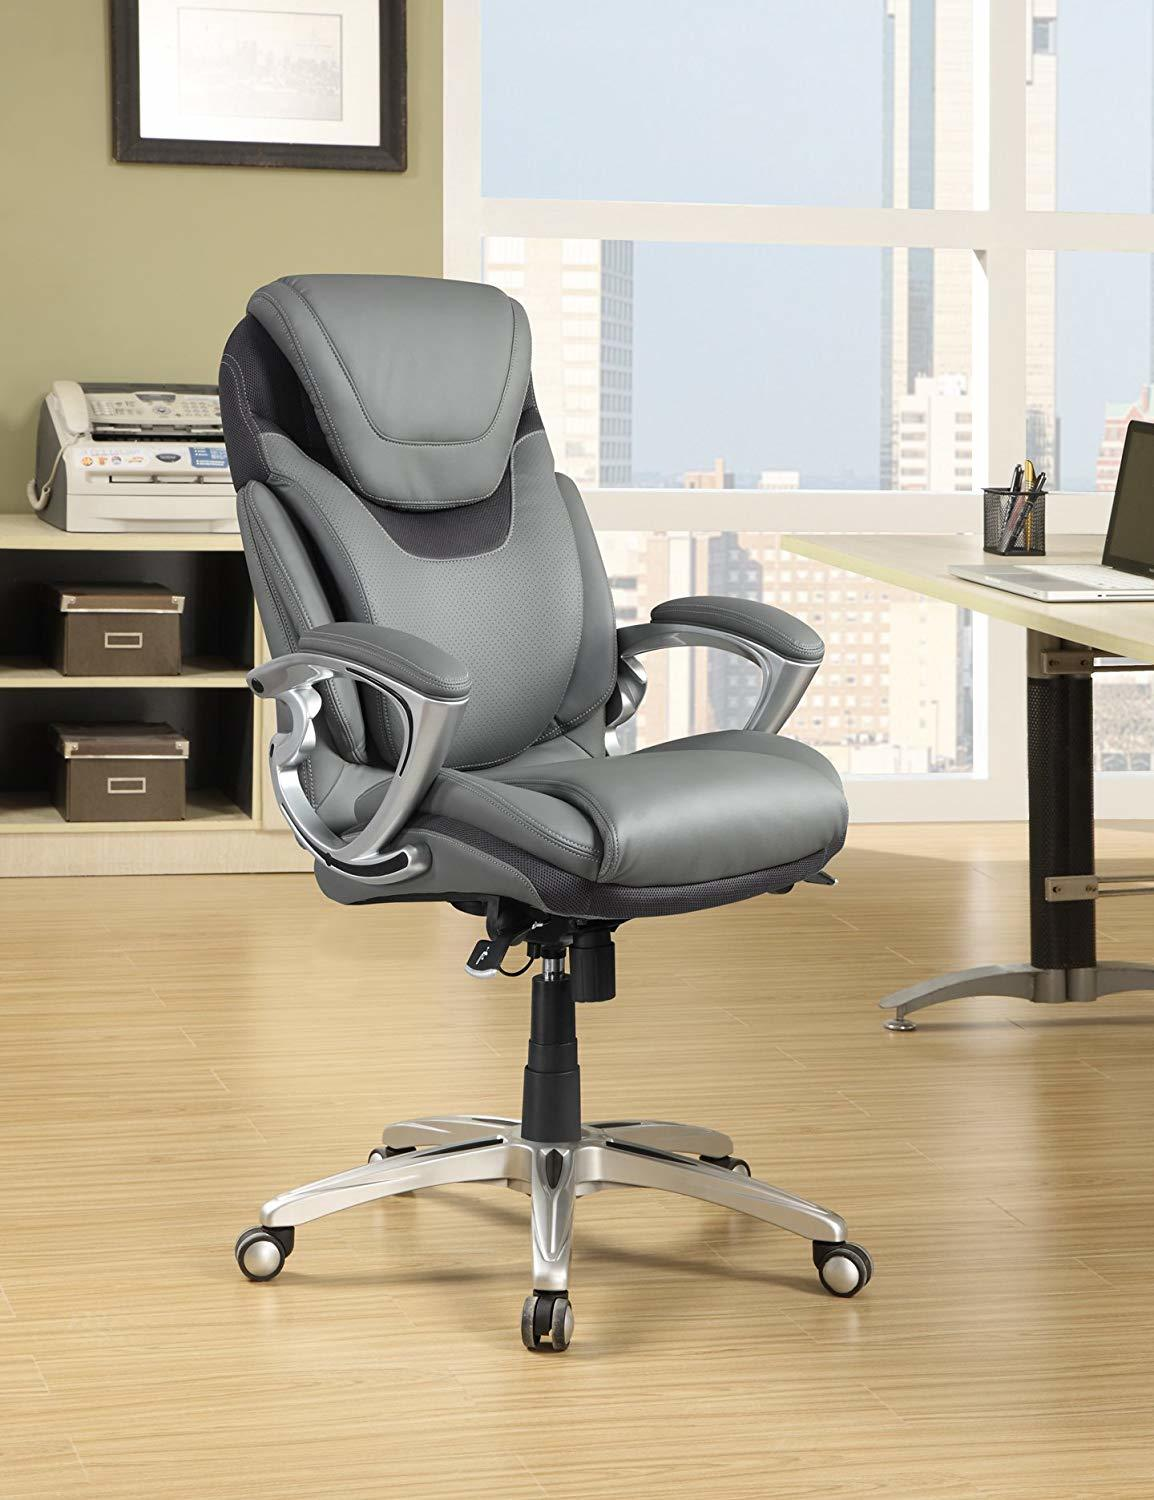 chair for office healthy alpine design zero gravity best back pain reviews